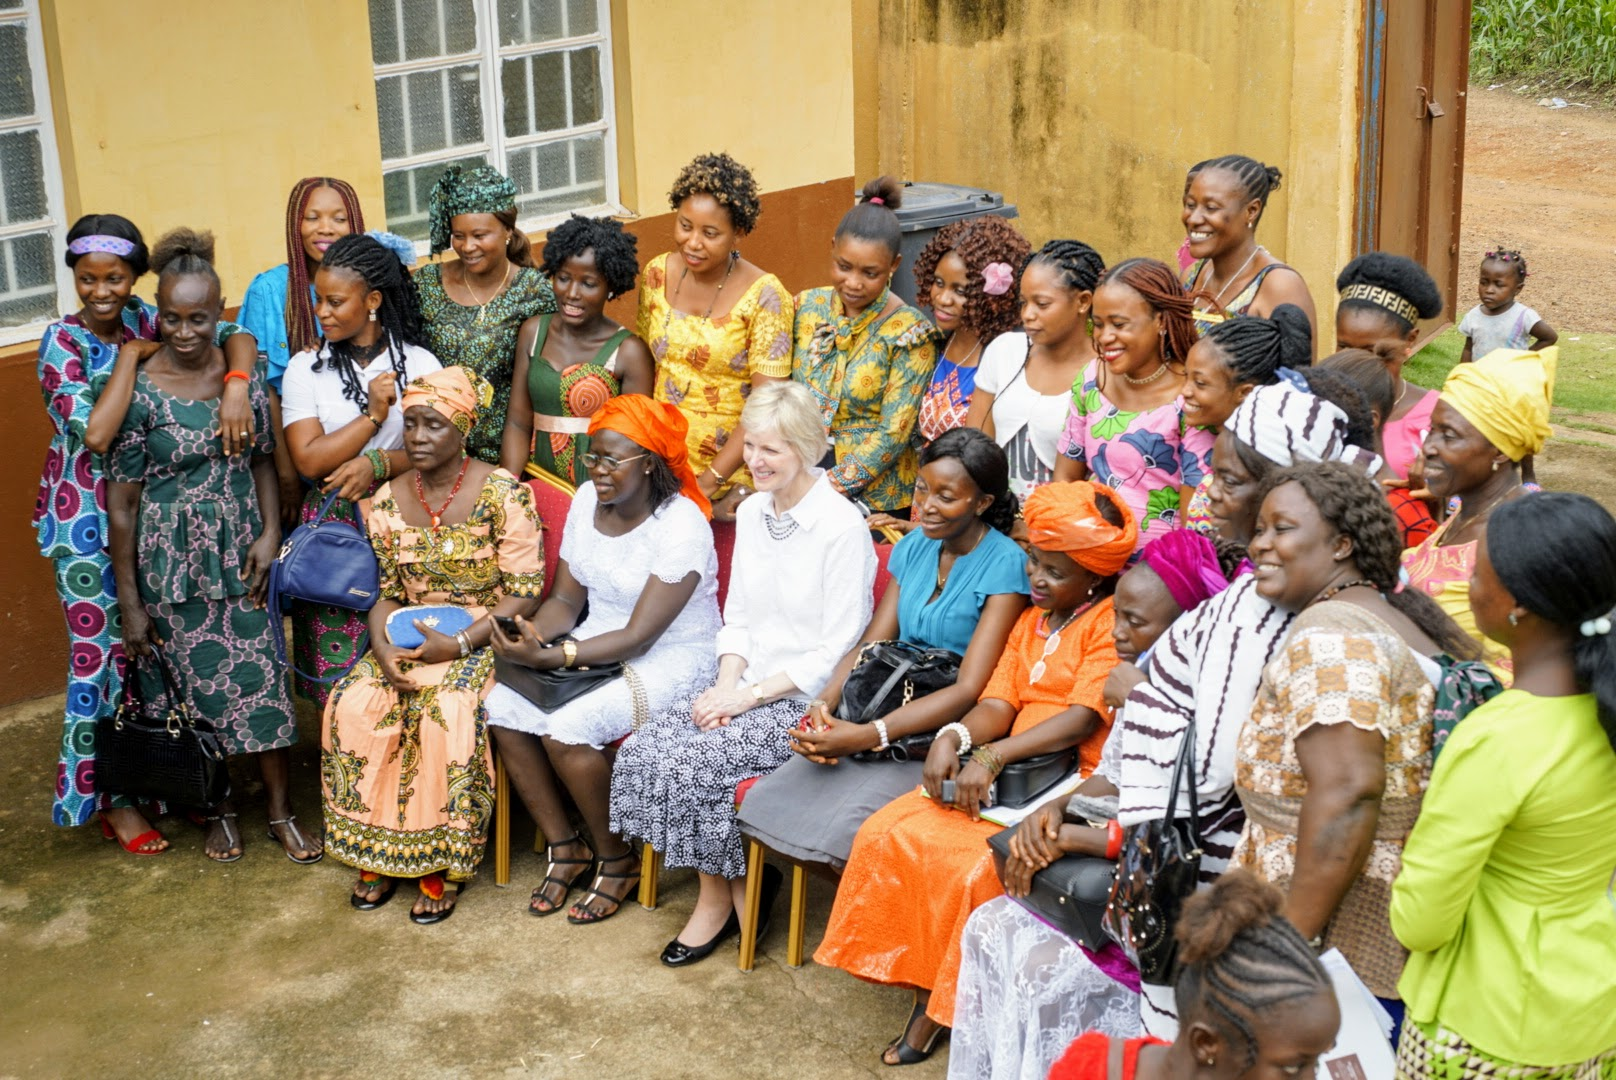 Sister Jean B. Bingham and members of the Relief Society pose for a photo in Sierra Leone. Sister Bingham, Relief Society general president, visited the West African country June 5 through June 16, 2019.